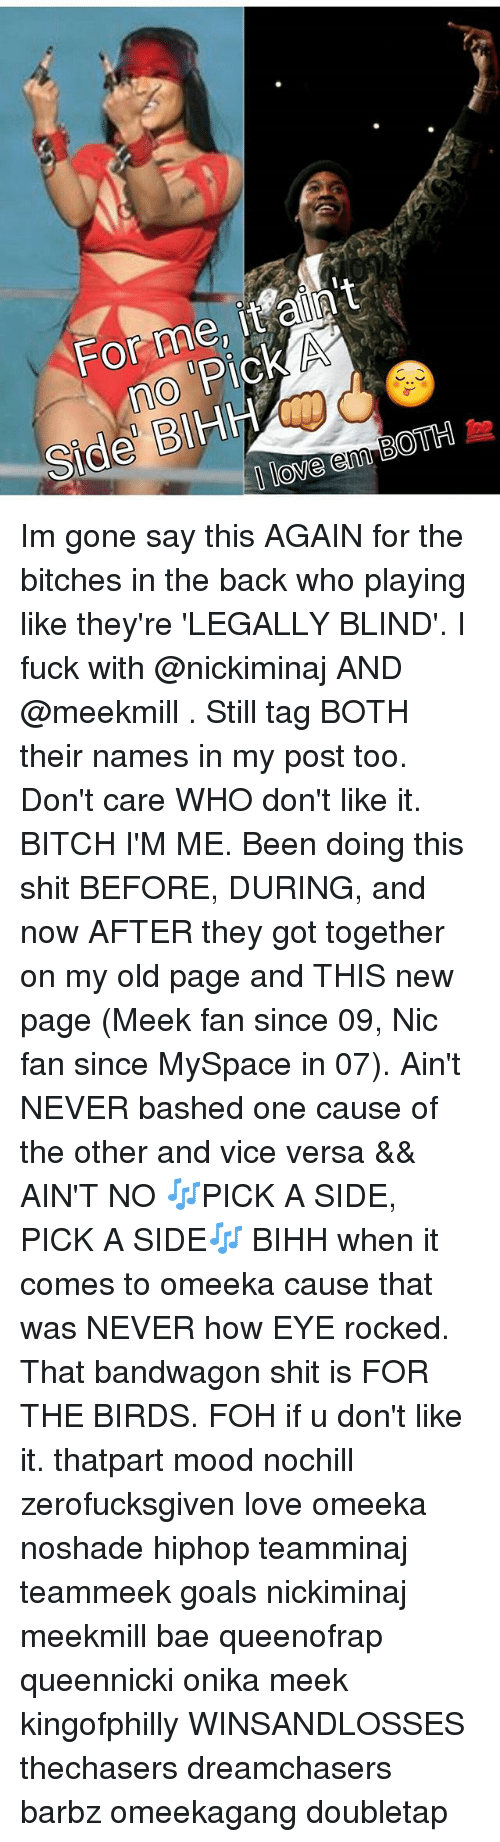 Dreamchasers: For me, it aliln't  no H  Side BIHH Im gone say this AGAIN for the bitches in the back who playing like they're 'LEGALLY BLIND'. I fuck with @nickiminaj AND @meekmill . Still tag BOTH their names in my post too. Don't care WHO don't like it. BITCH I'M ME. Been doing this shit BEFORE, DURING, and now AFTER they got together on my old page and THIS new page (Meek fan since 09, Nic fan since MySpace in 07). Ain't NEVER bashed one cause of the other and vice versa && AIN'T NO 🎶PICK A SIDE, PICK A SIDE🎶 BIHH when it comes to omeeka cause that was NEVER how EYE rocked. That bandwagon shit is FOR THE BIRDS. FOH if u don't like it. thatpart mood nochill zerofucksgiven love omeeka noshade hiphop teamminaj teammeek goals nickiminaj meekmill bae queenofrap queennicki onika meek kingofphilly WINSANDLOSSES thechasers dreamchasers barbz omeekagang doubletap